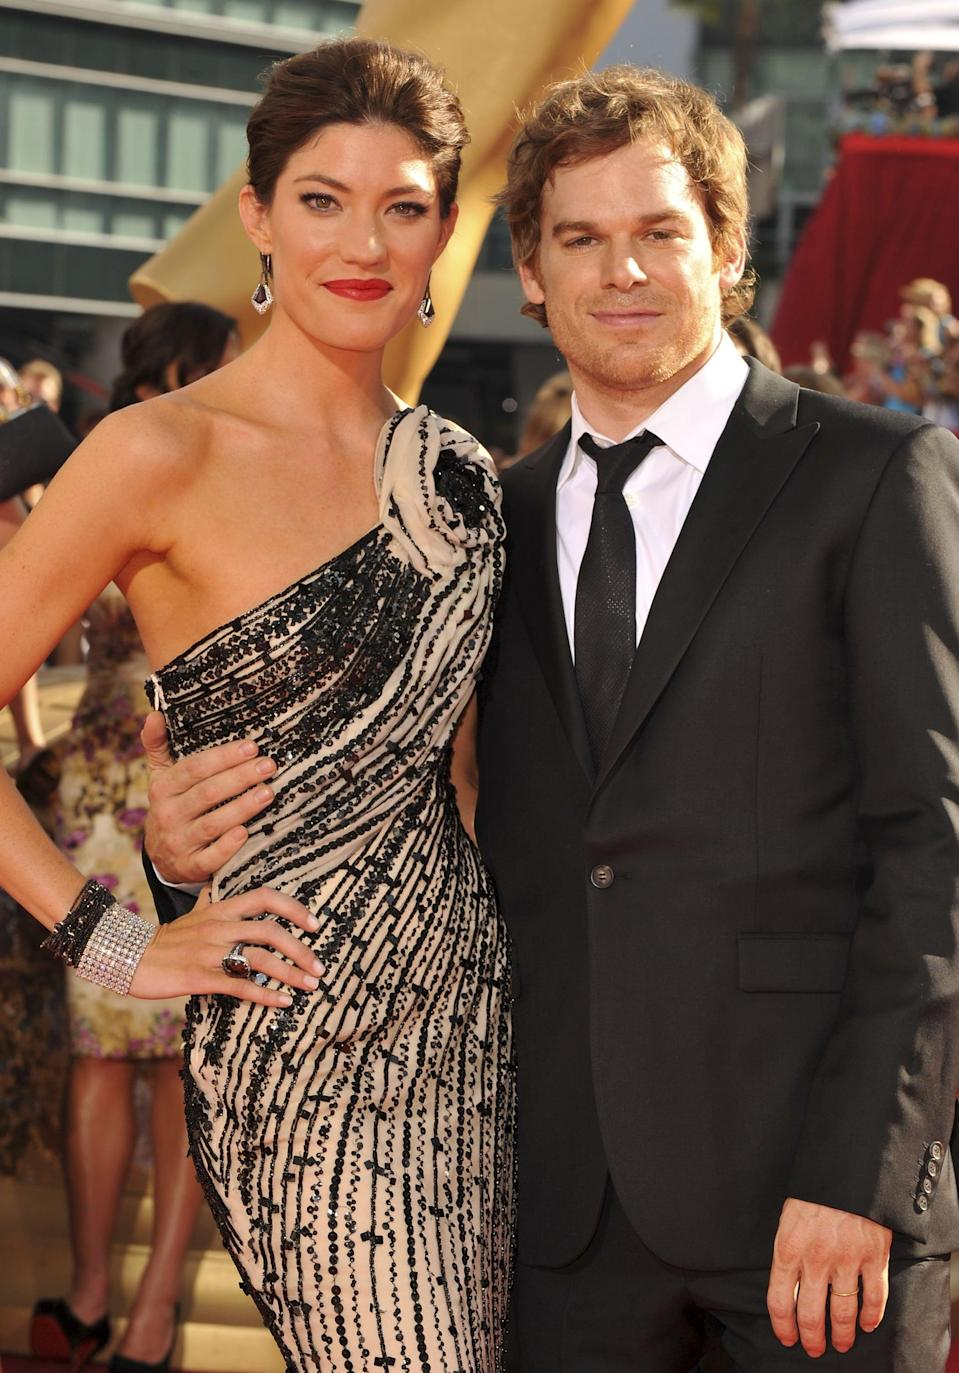 "<p>Though Jennifer and Michael played adoptive siblings Dexter and Debra on <strong>Dexter</strong>, that didn't stop the two from falling for each other. After meeting in 2006, the actors started dating during the show's second season and later tied the knot in 2008. The couple was married for two years before they decided to divorce in 2011, though they continued to star on the show (and even became onscreen lovers) until <strong>Dexter</strong> ended in 2013. </p> <p>In September 2013, <a href=""http://www.usmagazine.com/celebrity-news/news/jennifer-carpenter-tears-up-talking-about-michael-c-hall-divorce-at-dexter-event-2013139/"" class=""link rapid-noclick-resp"" rel=""nofollow noopener"" target=""_blank"" data-ylk=""slk:Jennifer got emotional while discussing their divorce"">Jennifer got emotional while discussing their divorce</a> at the PaleyFest<strong> Dexter</strong> Fall Farewell event. ""Our marriage didn't look like anyone else's, and our divorce didn't either,"" she said, later adding, ""I said it before - just because the marriage ended doesn't mean the love did."" </p>"